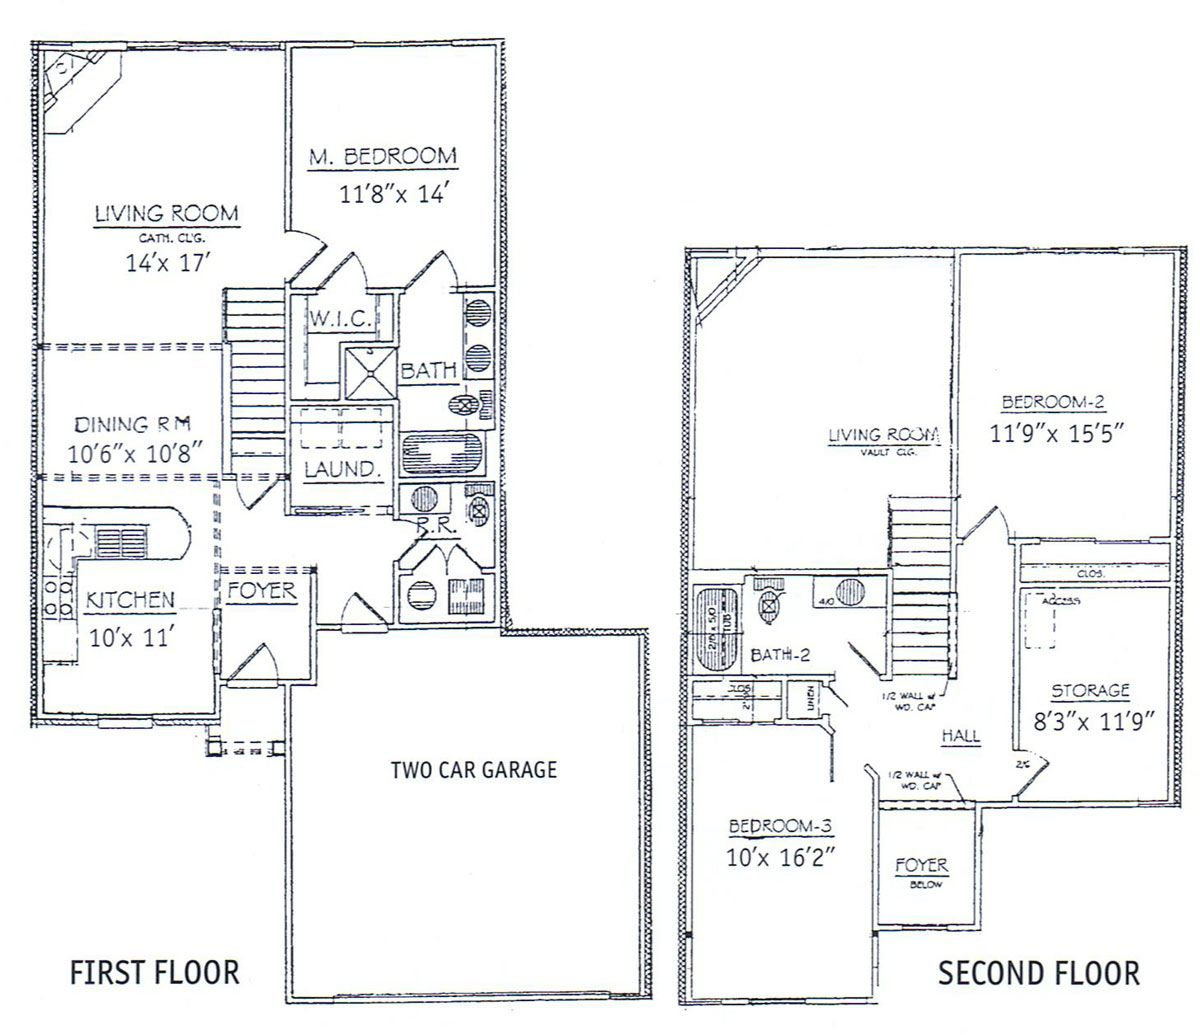 3 bedrooms floor plans 2 story bdrm basement the two Three bedroom floor plan house design